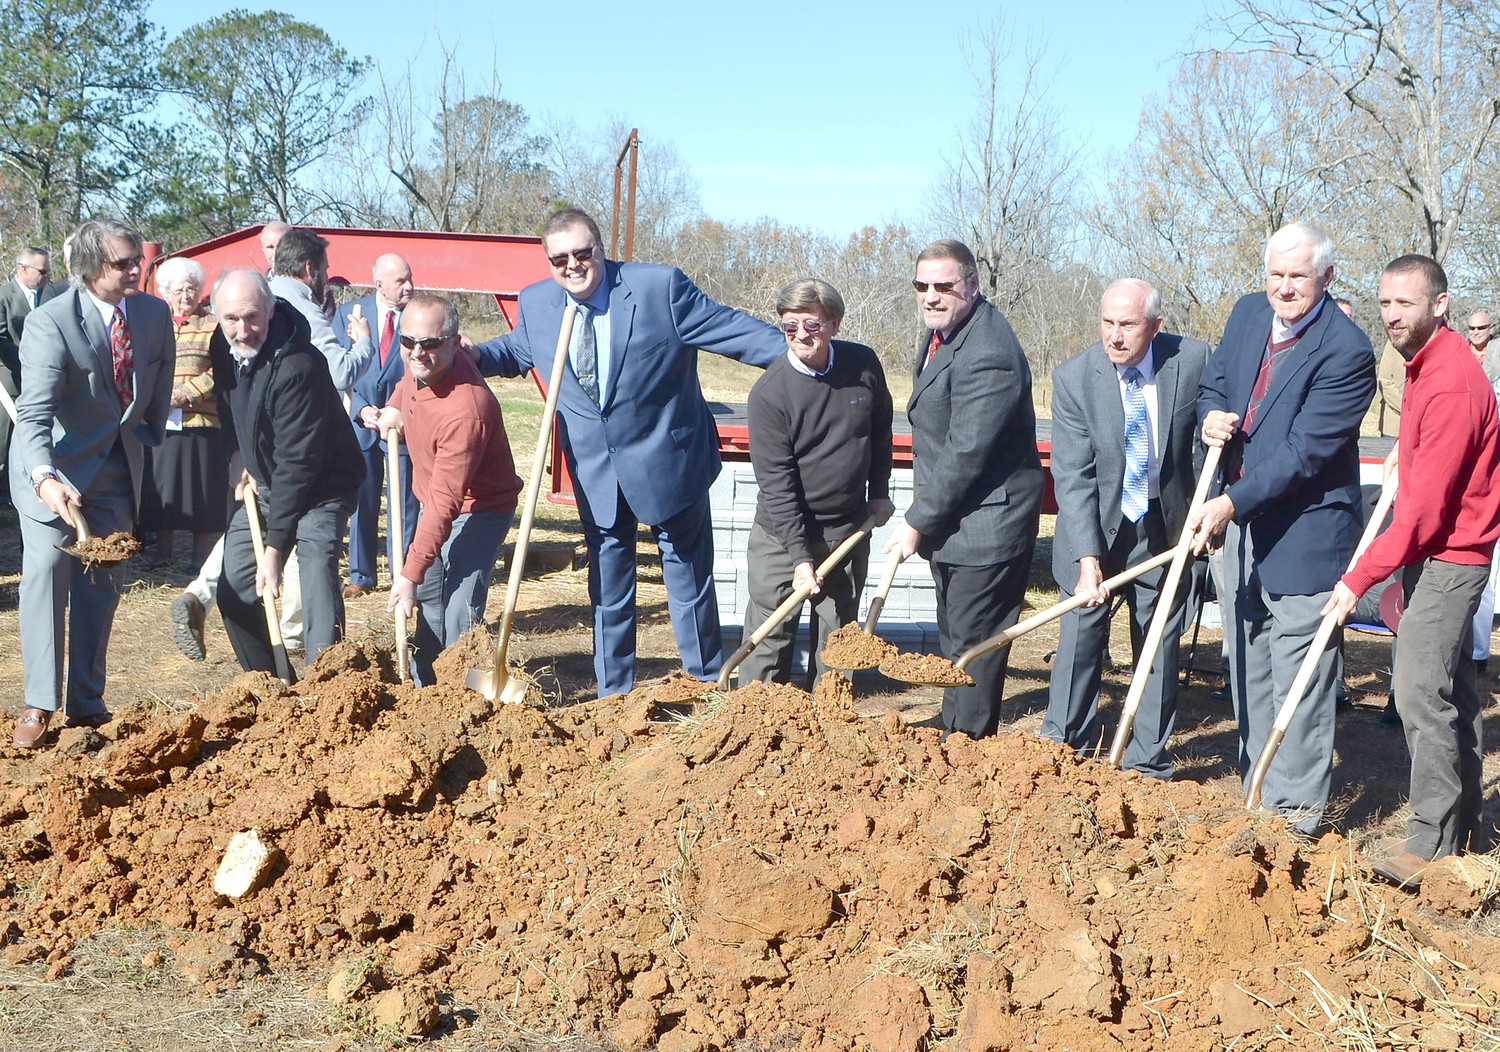 ELDERS AT WESTMORE CHURCH OF GOD were involved in the groundbreaking for the new church site. From left are Steven Hattabaugh,